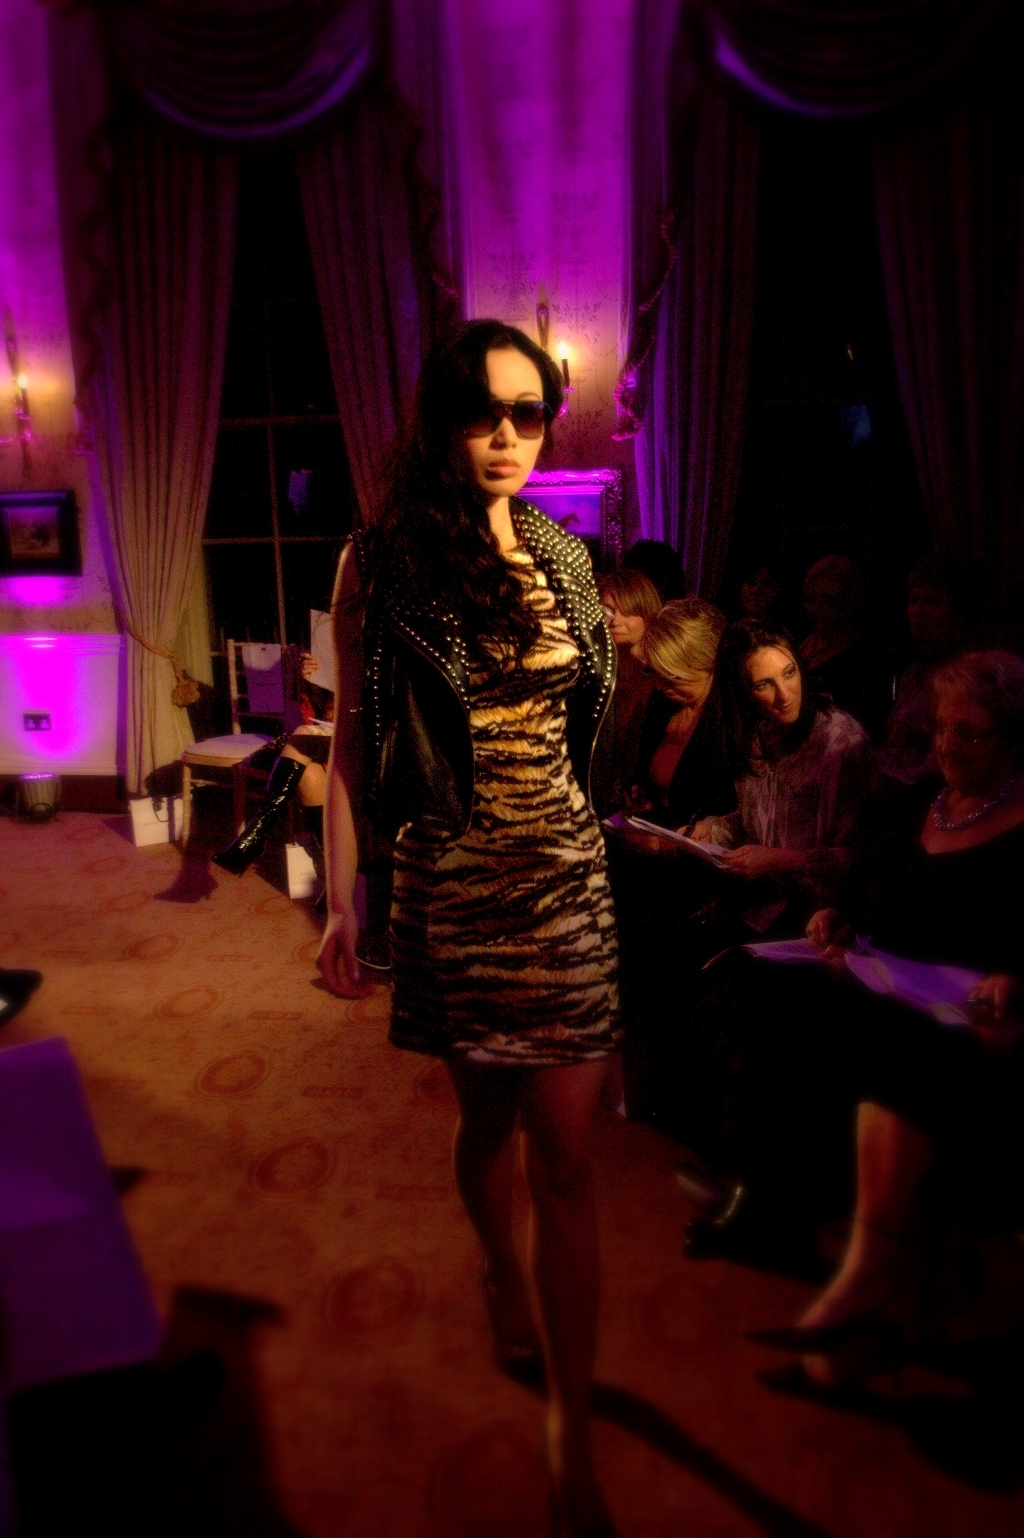 Moody Lighting at Mount Juliet Fashion Event